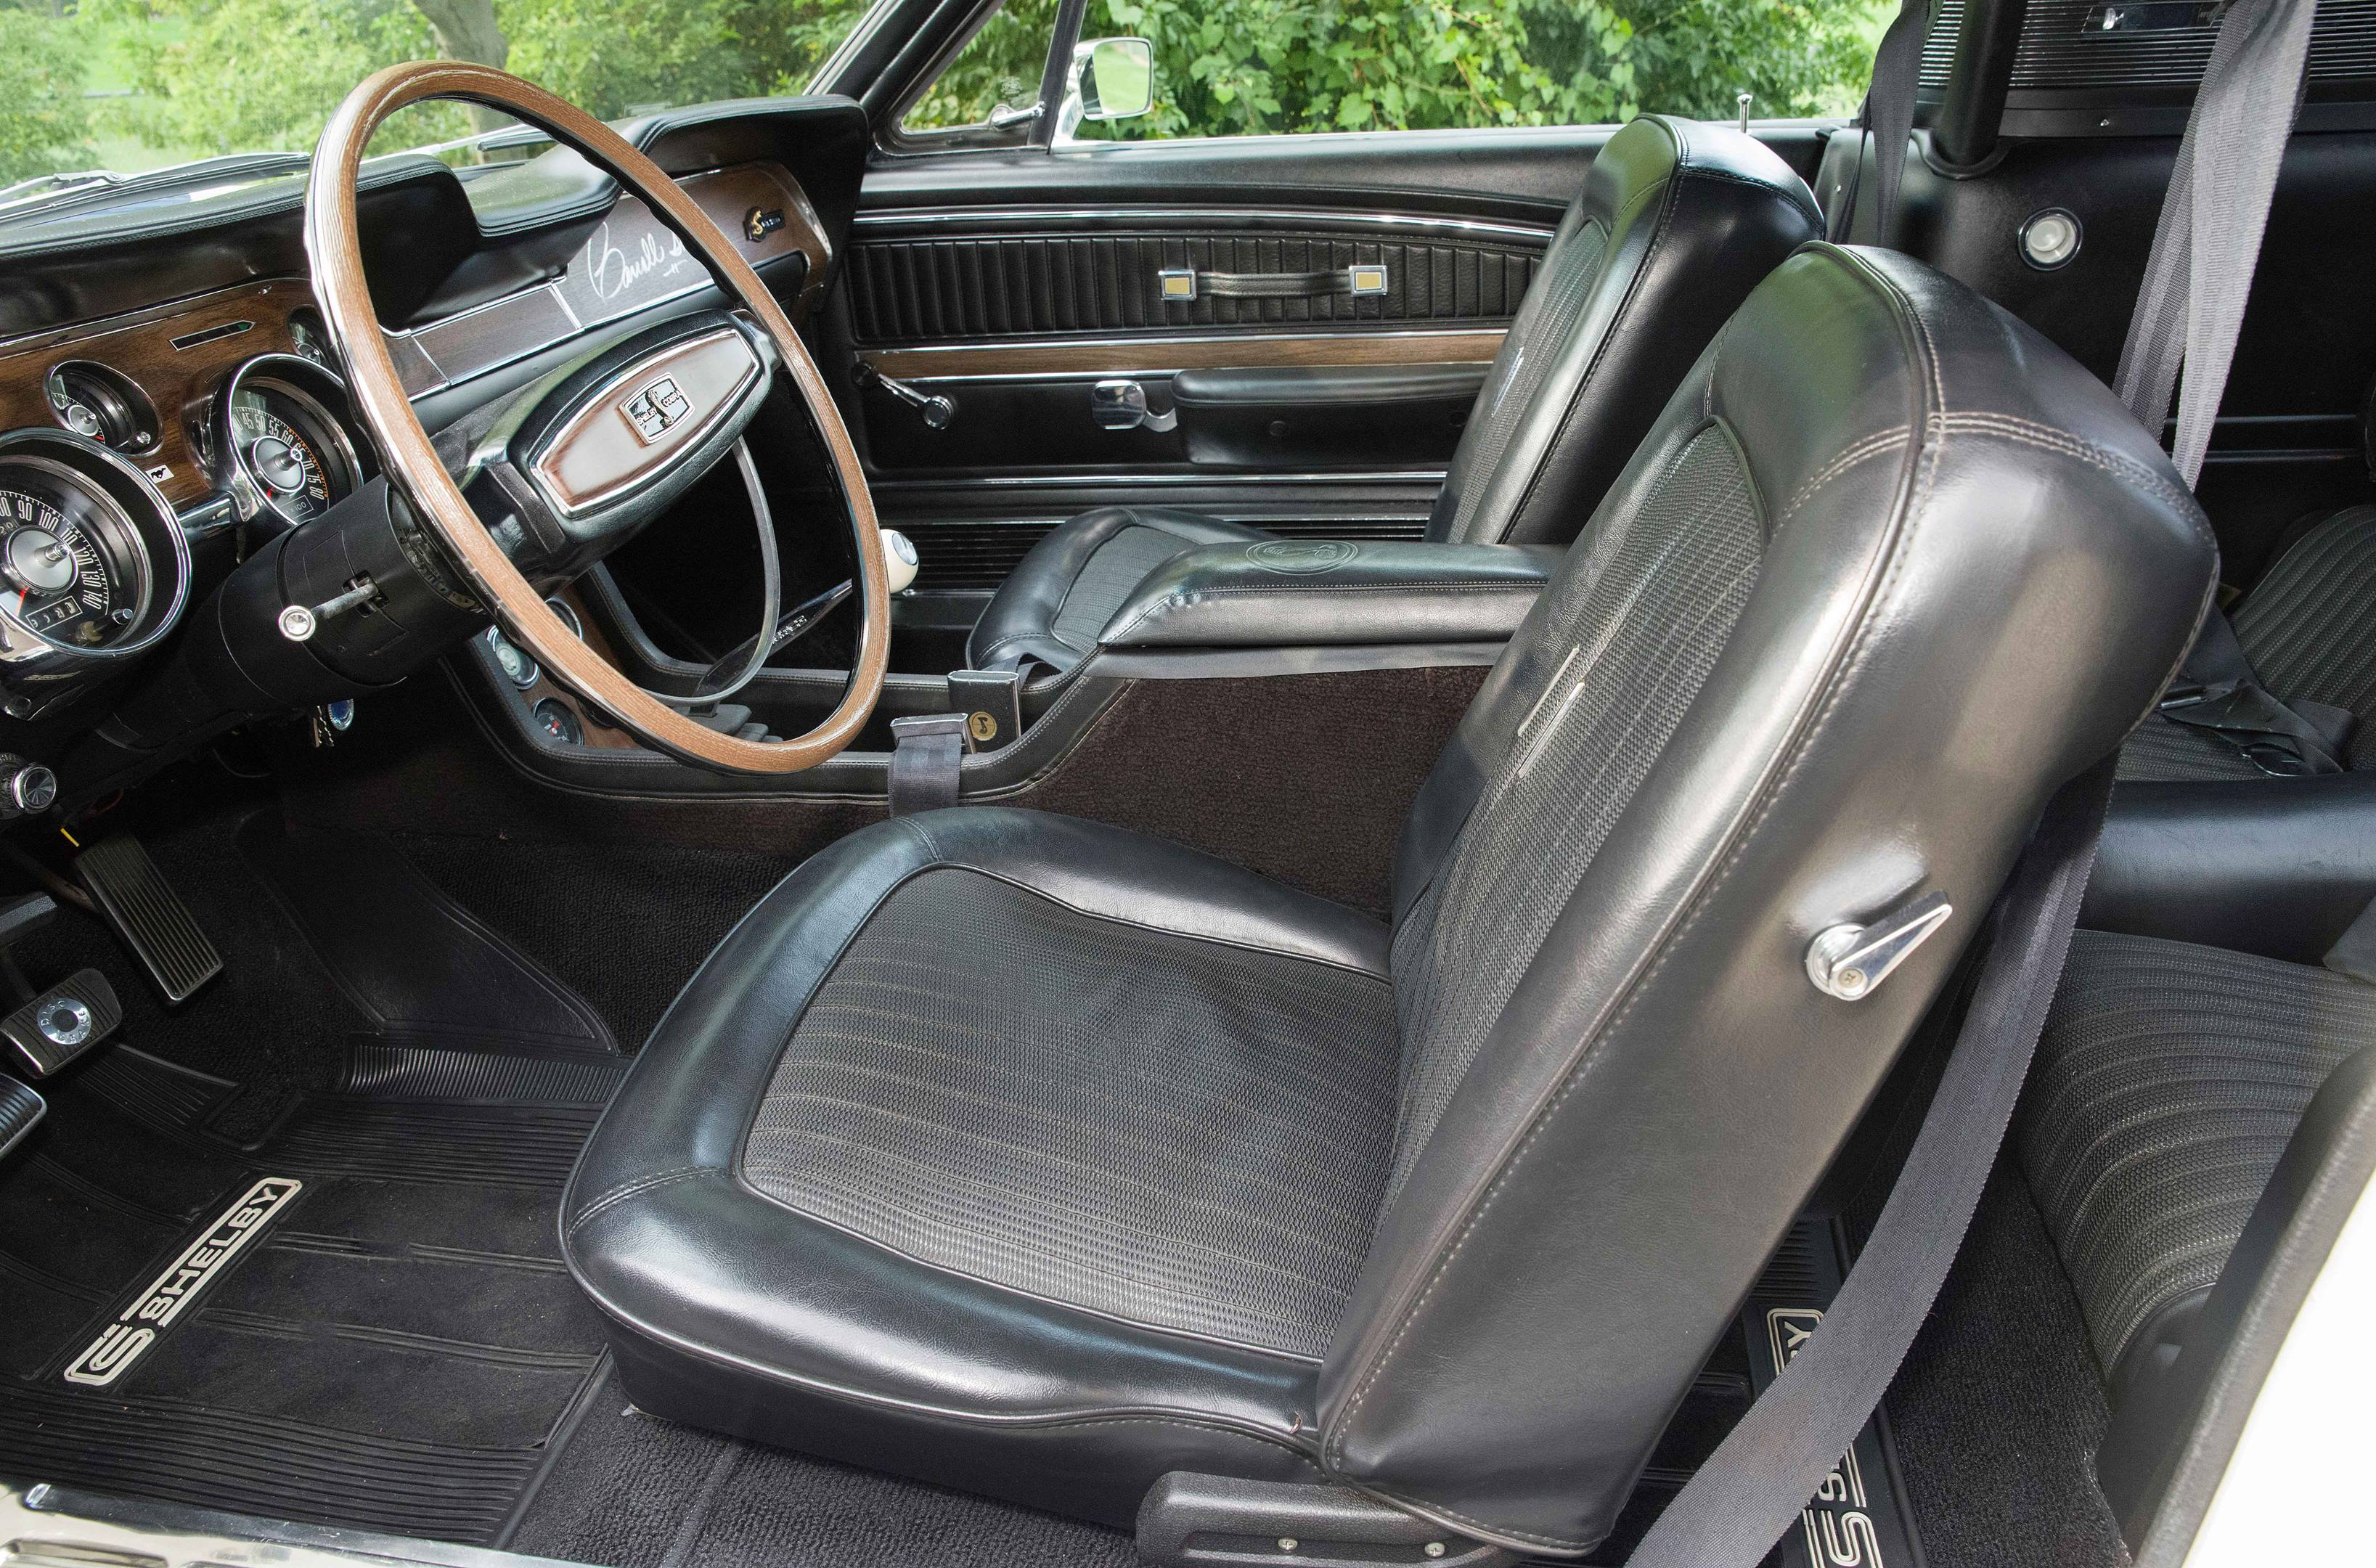 The upholstery and carpeting are in good condition and were probably replaced when the car was restored.